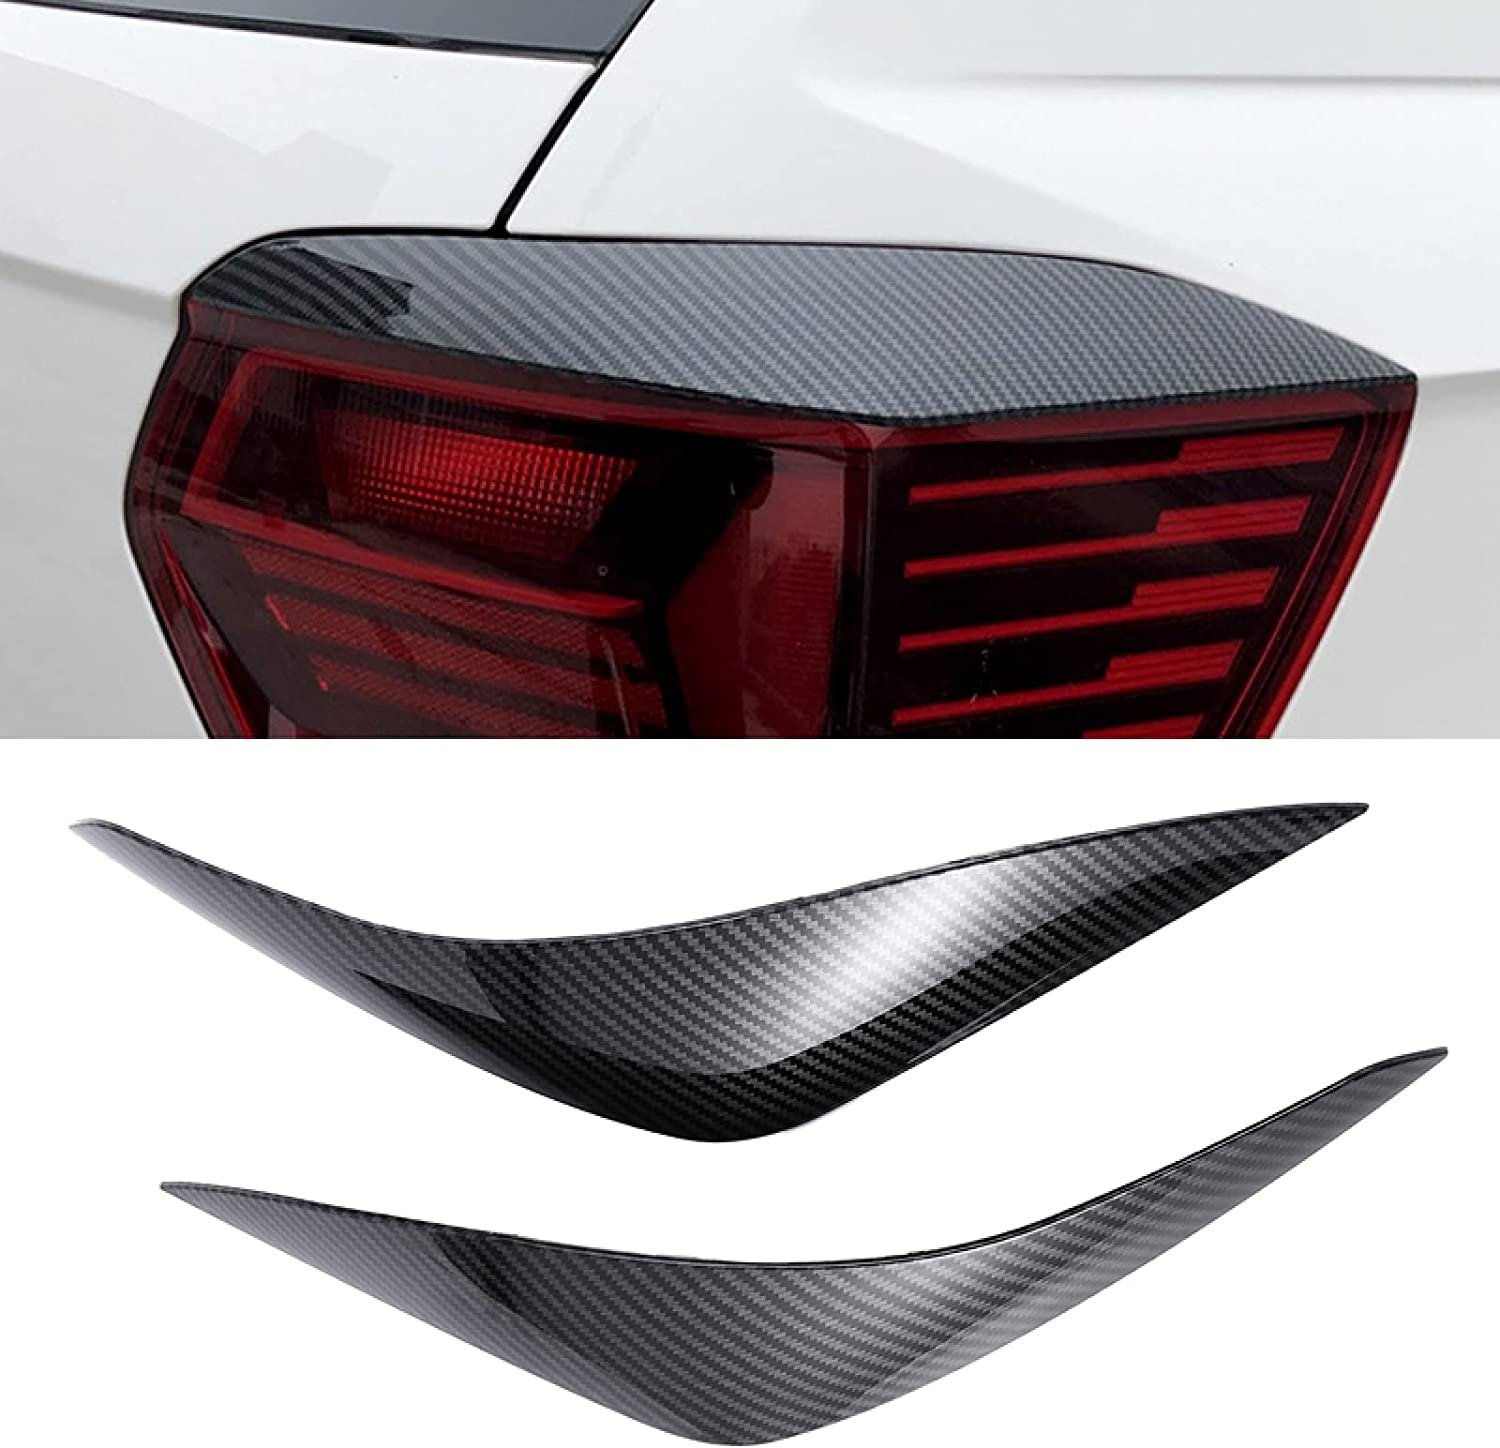 Piaobaige Car Headlights Eyelids Ranking TOP11 Eyebrow Cover Same day shipping ABS Stickers Trim